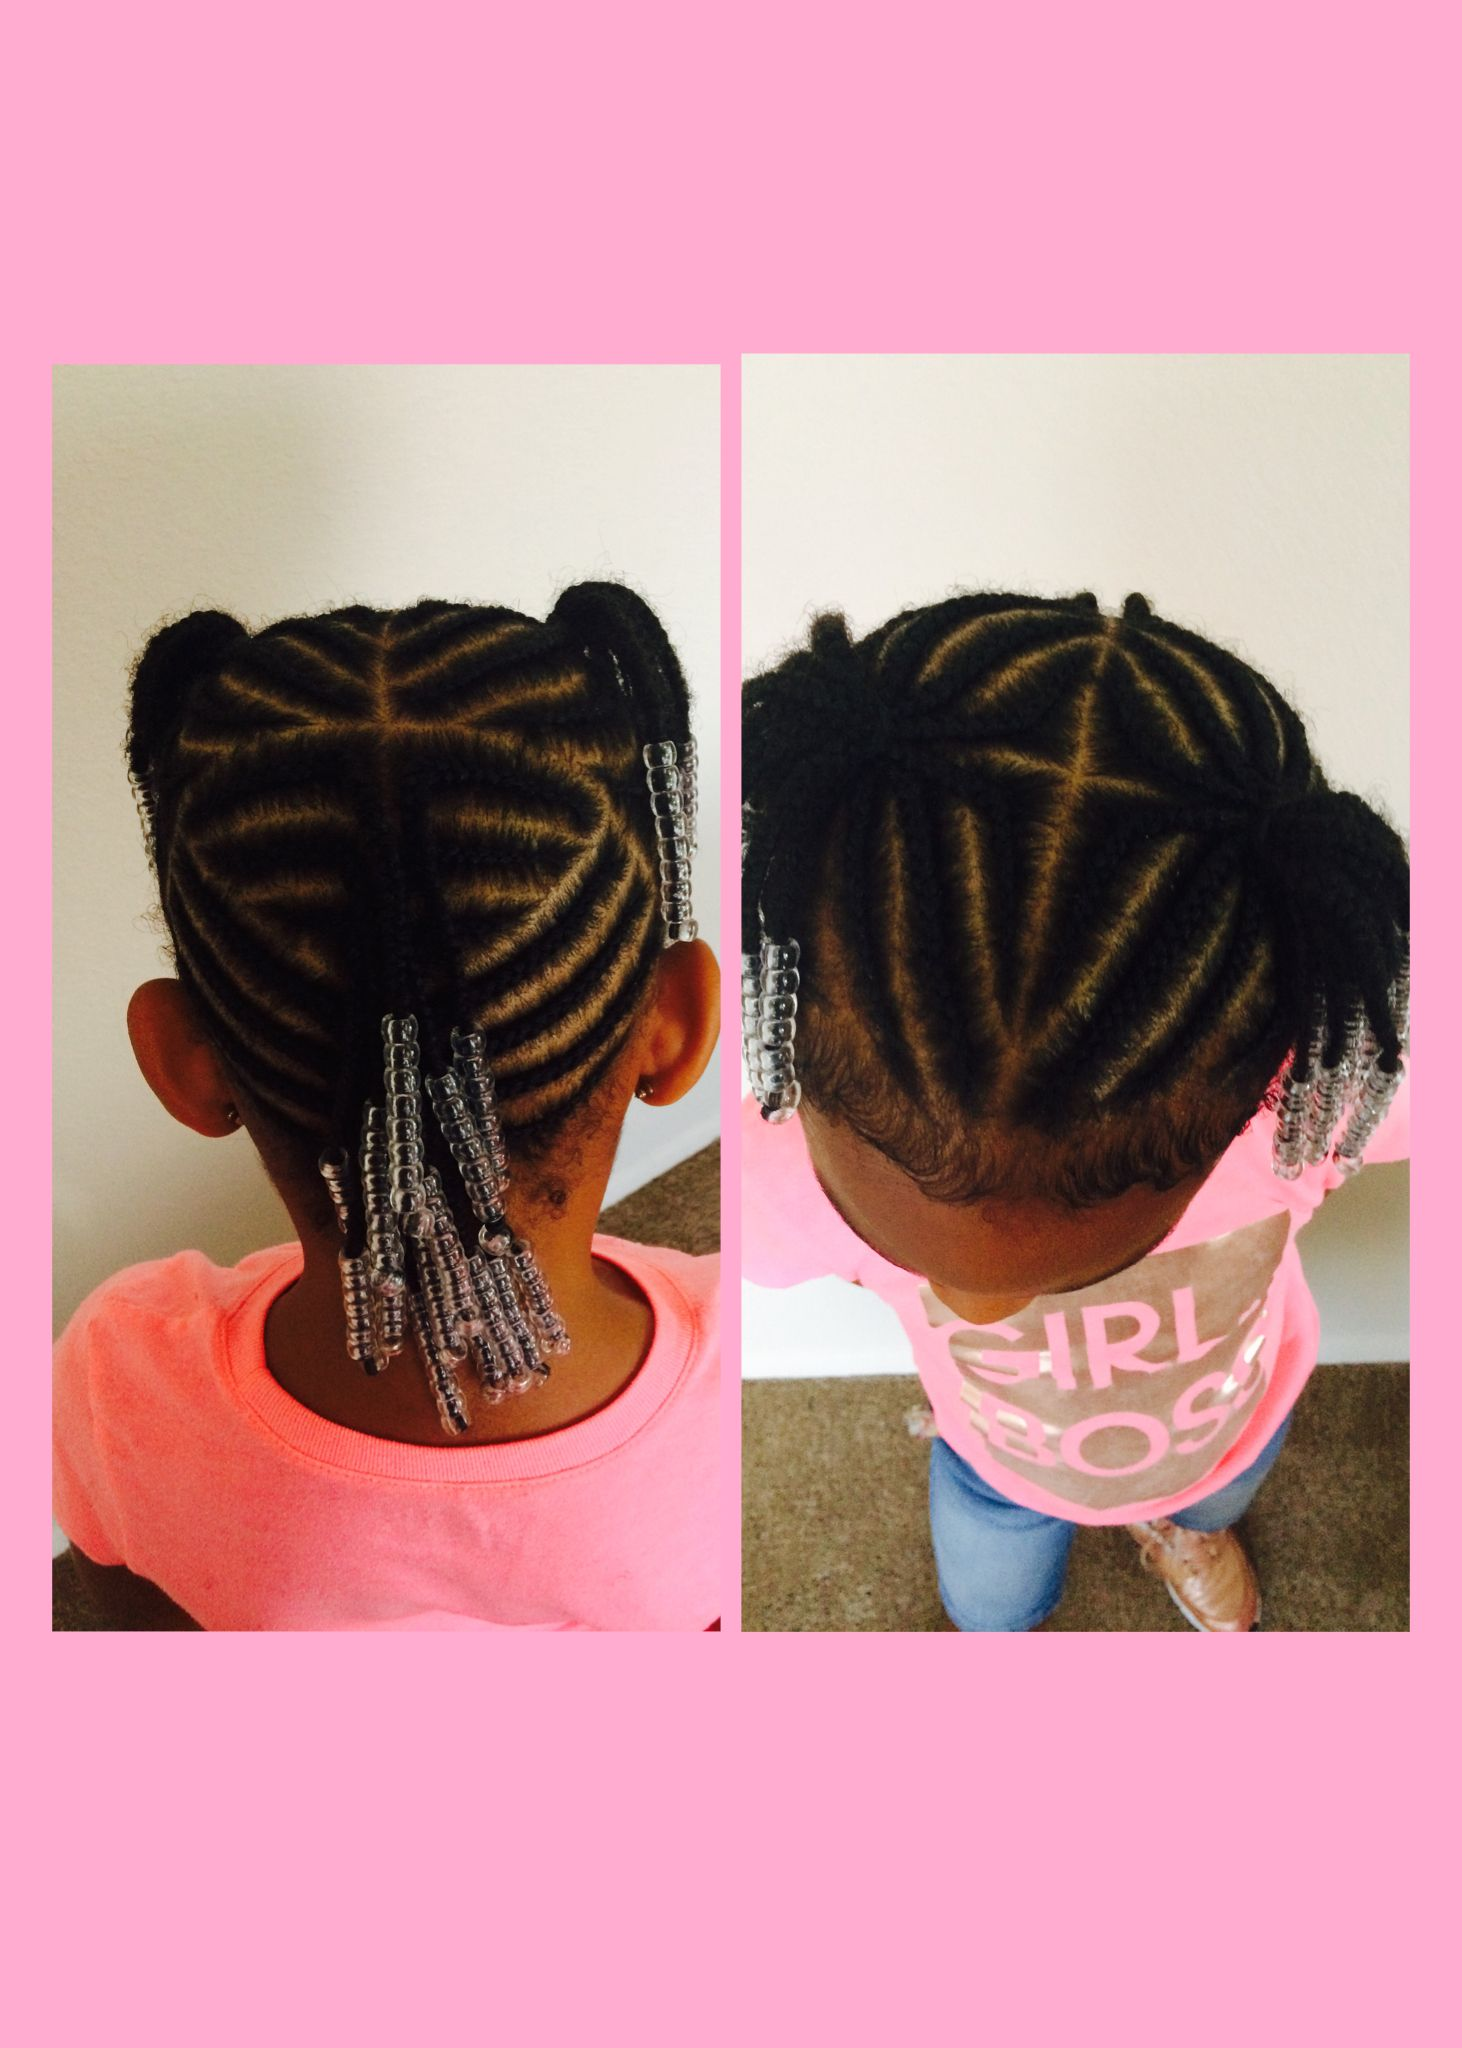 Pin by rosa williams on kl pinterest hair style